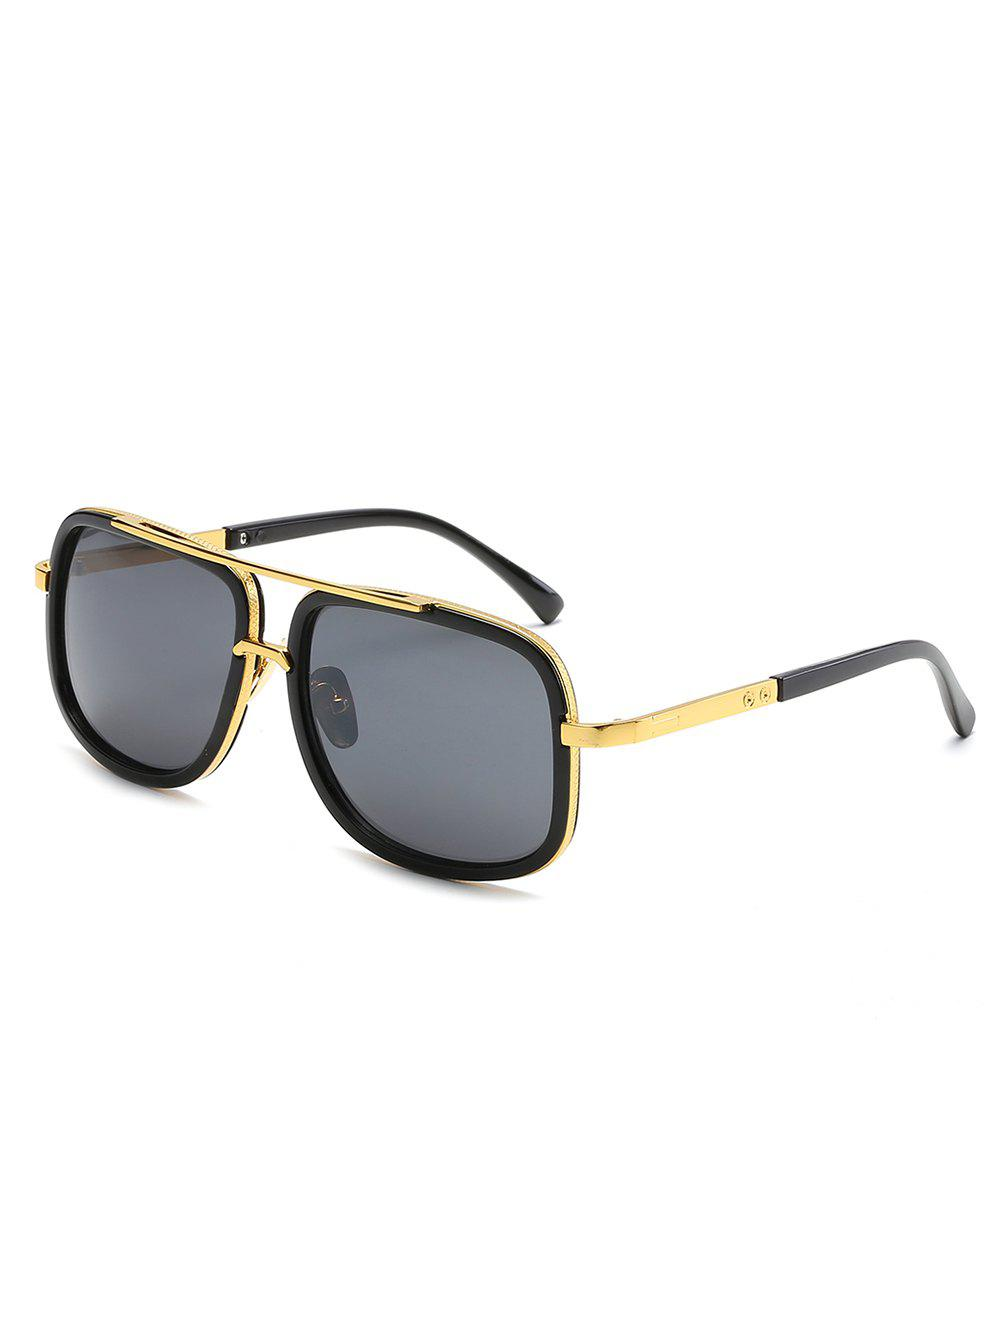 Unique Stylish Metal Frame Crossbar Driving Sunglasses